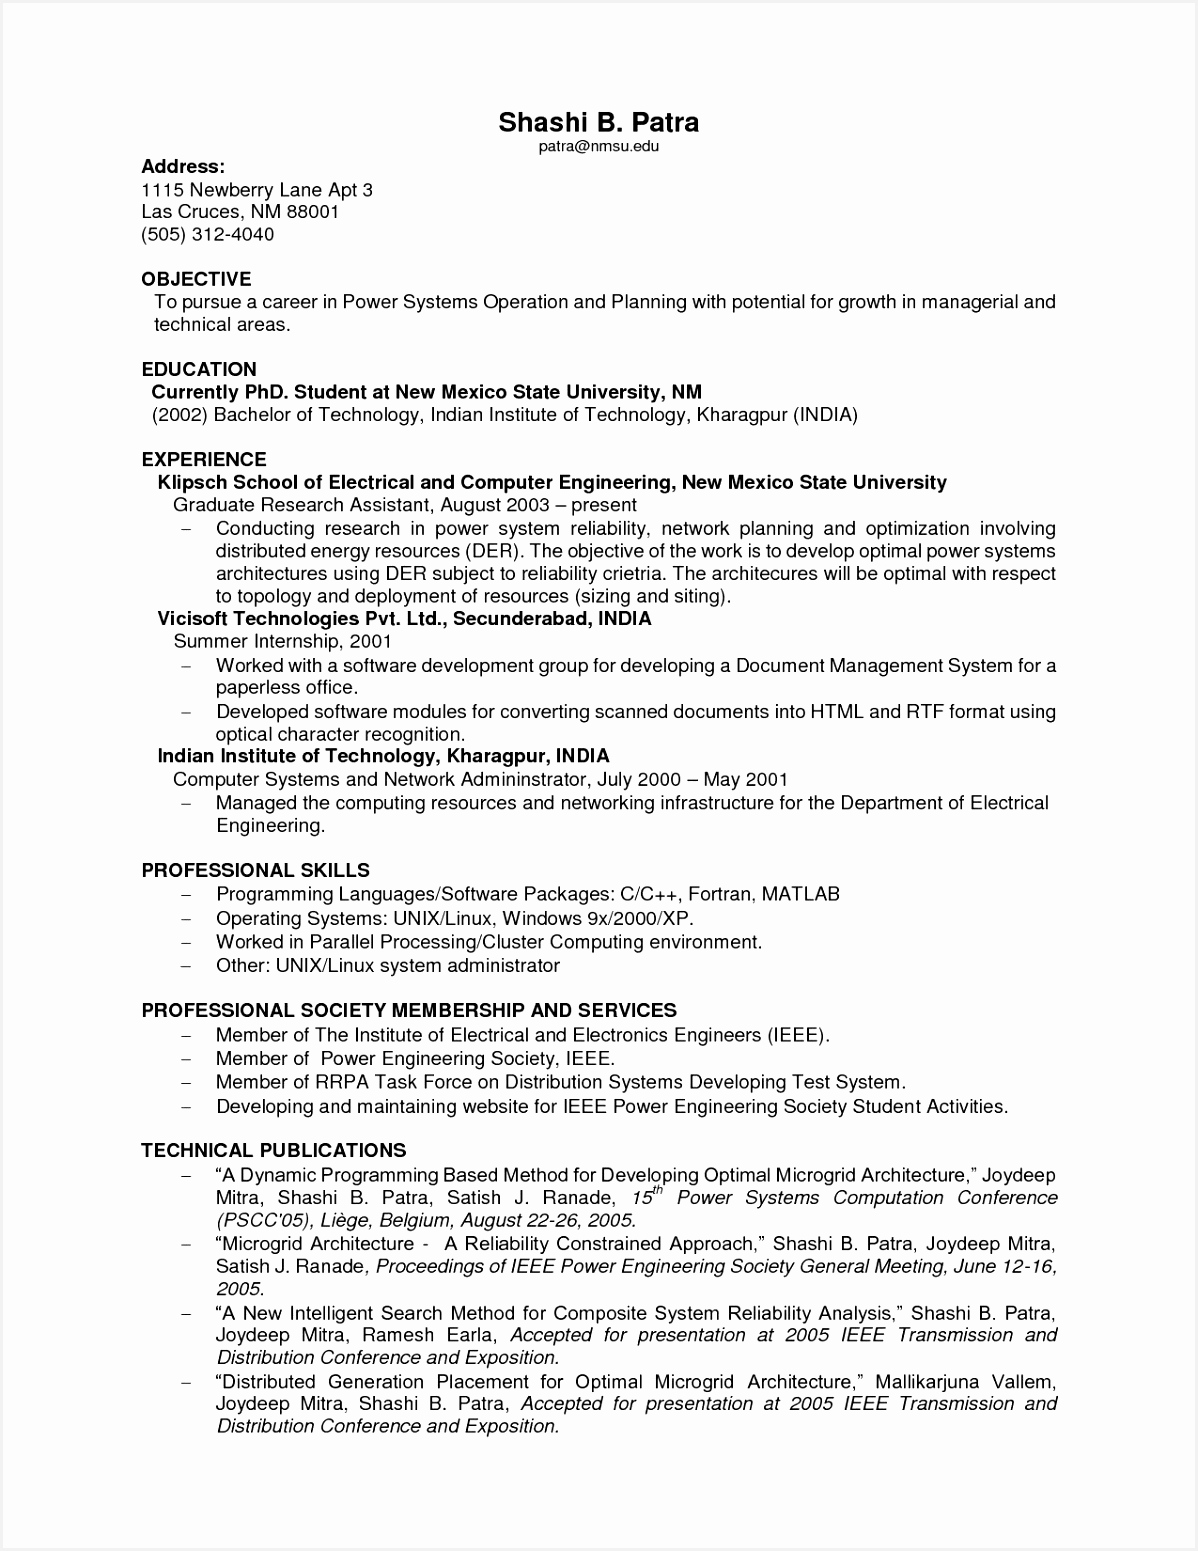 Resume Templates For Students With No Experience Valid Resume For No Experience Elegant Resume Examples 0d 15511198qdhhs